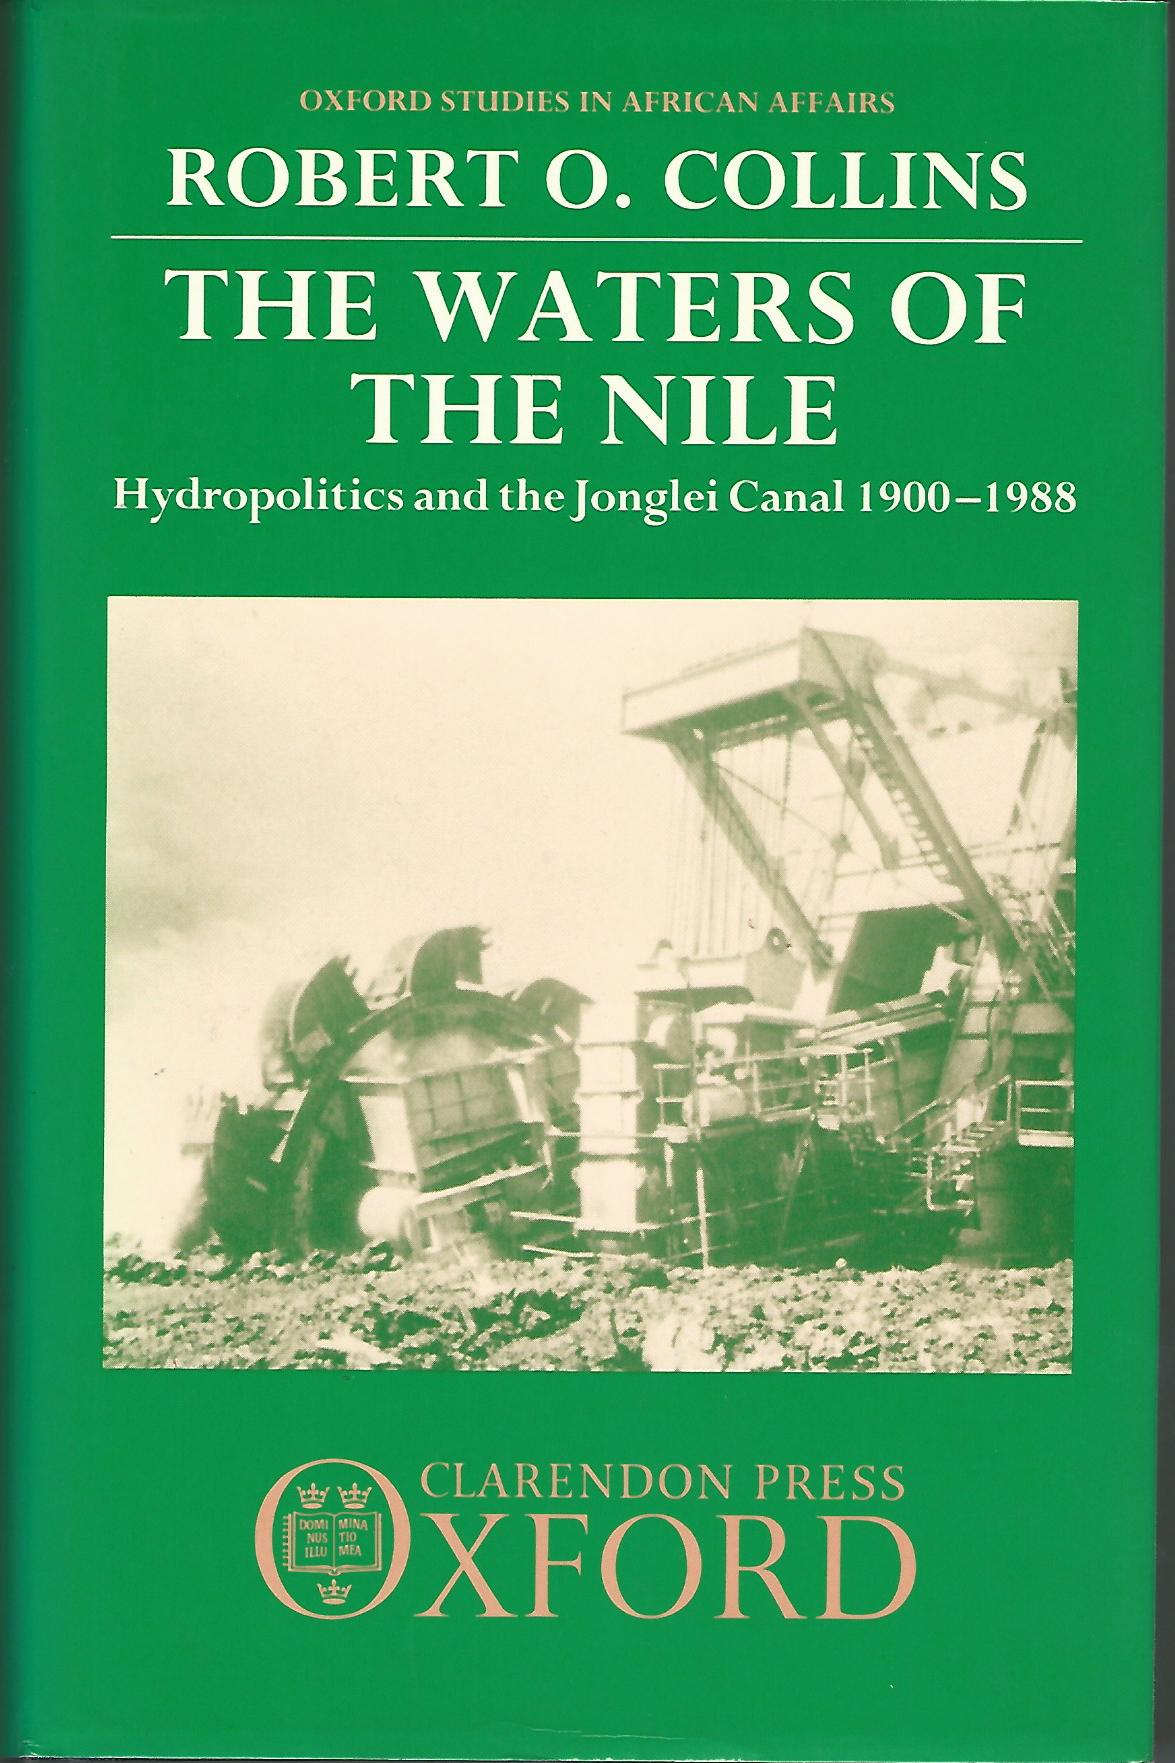 Image for The Waters of the Nile: Hydropolitics and the Jonglei Canal 1900-1988 (Oxford Studies in African Affairs)